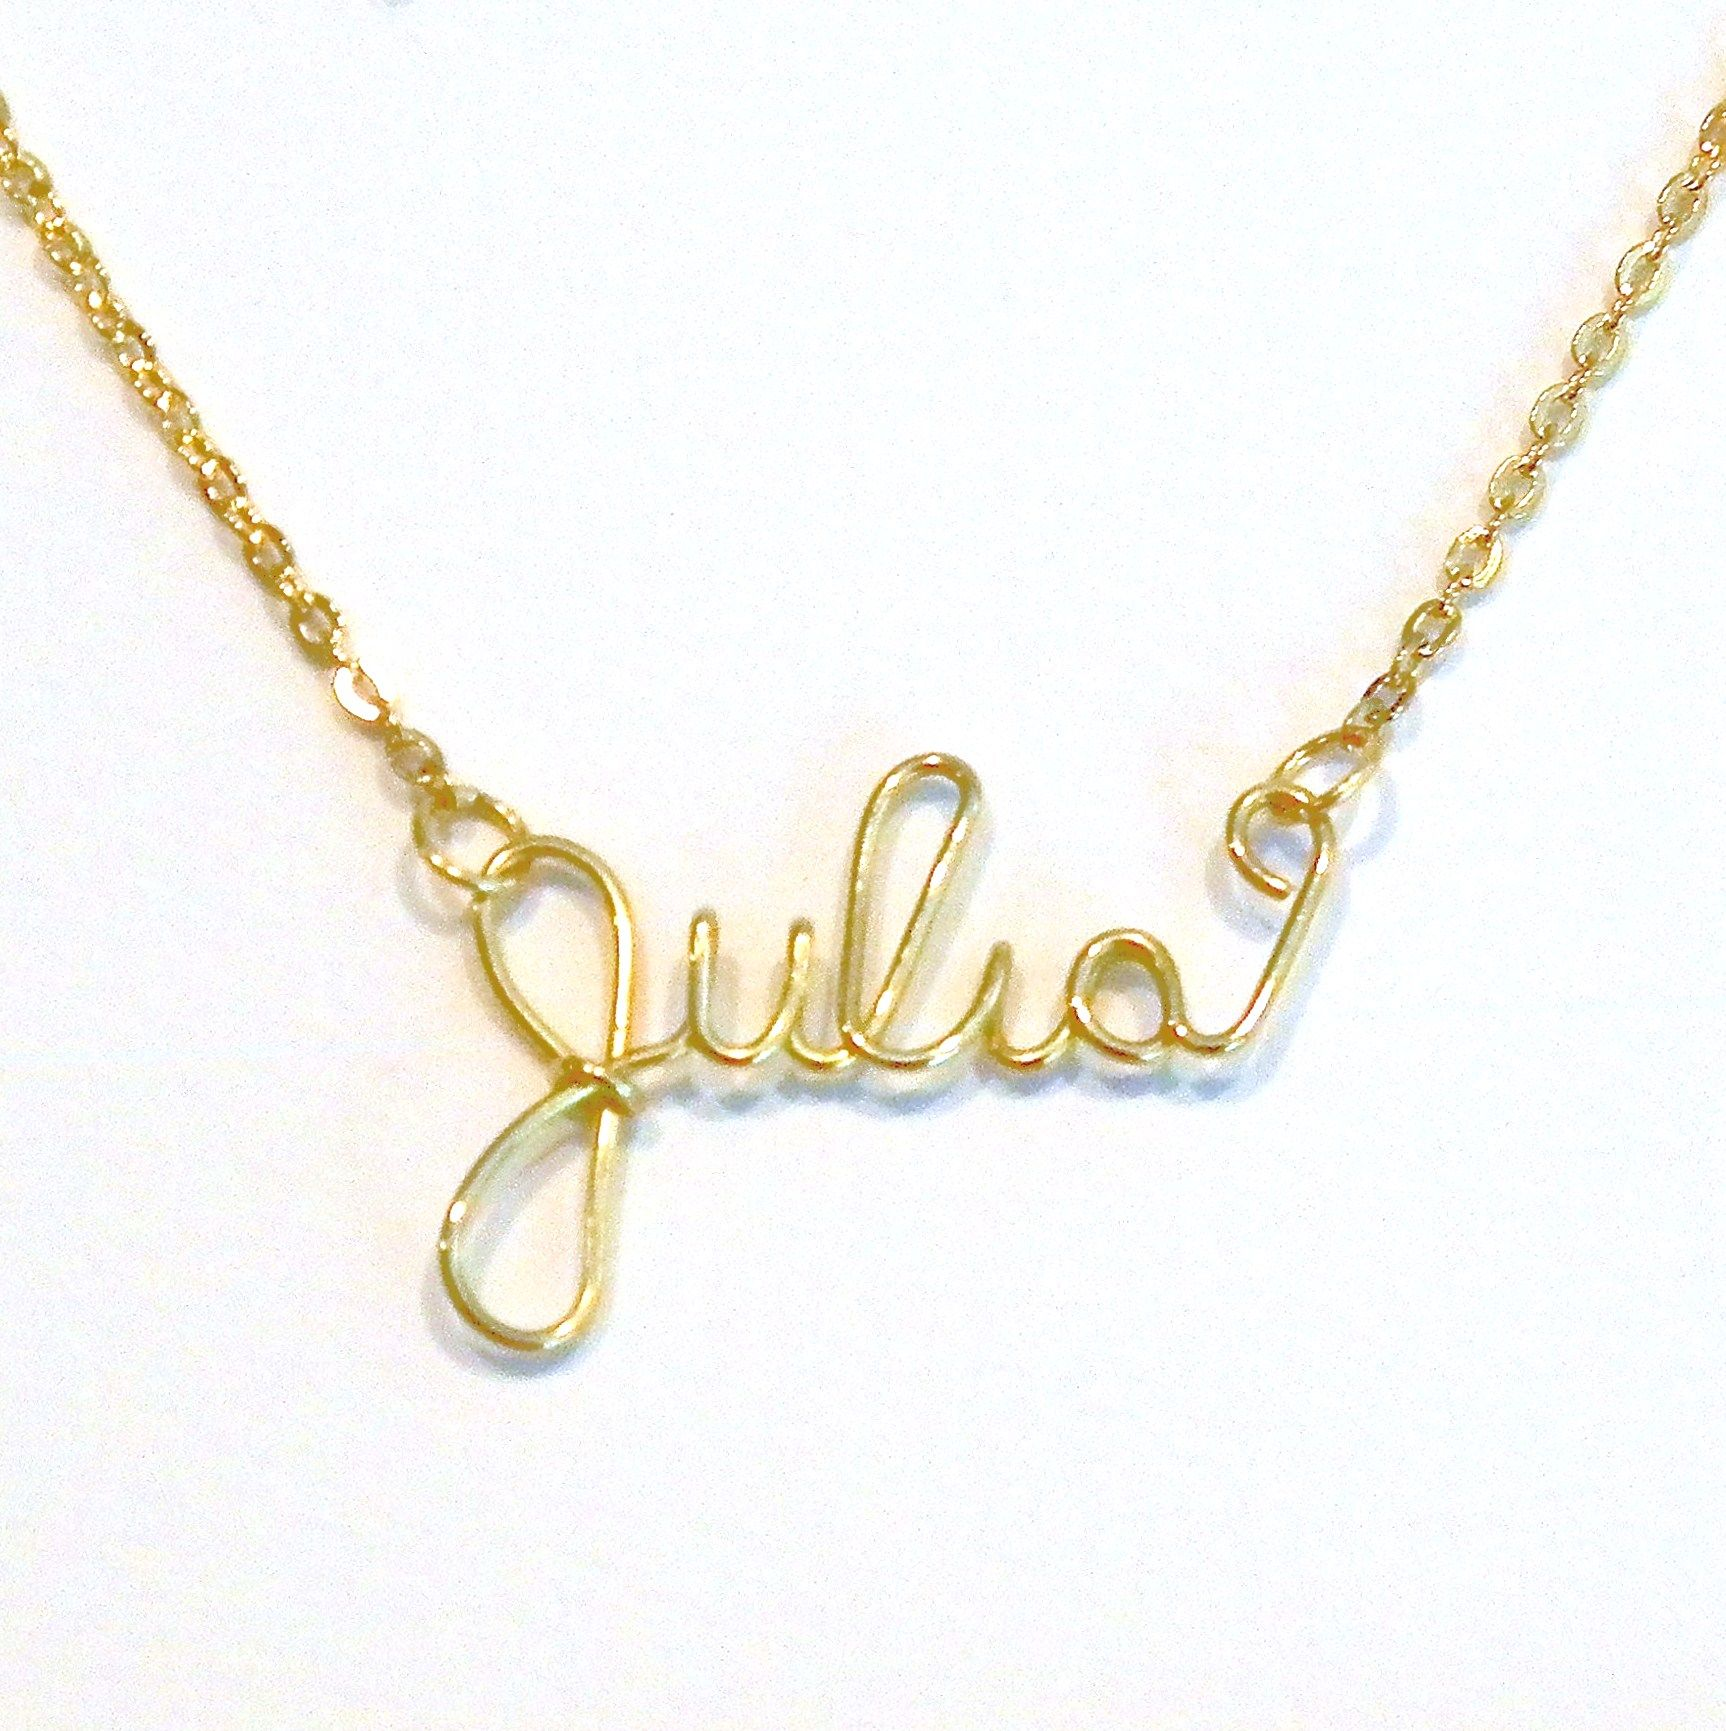 jbjd personalised janine classic jewellery cursive name necklace binneman design